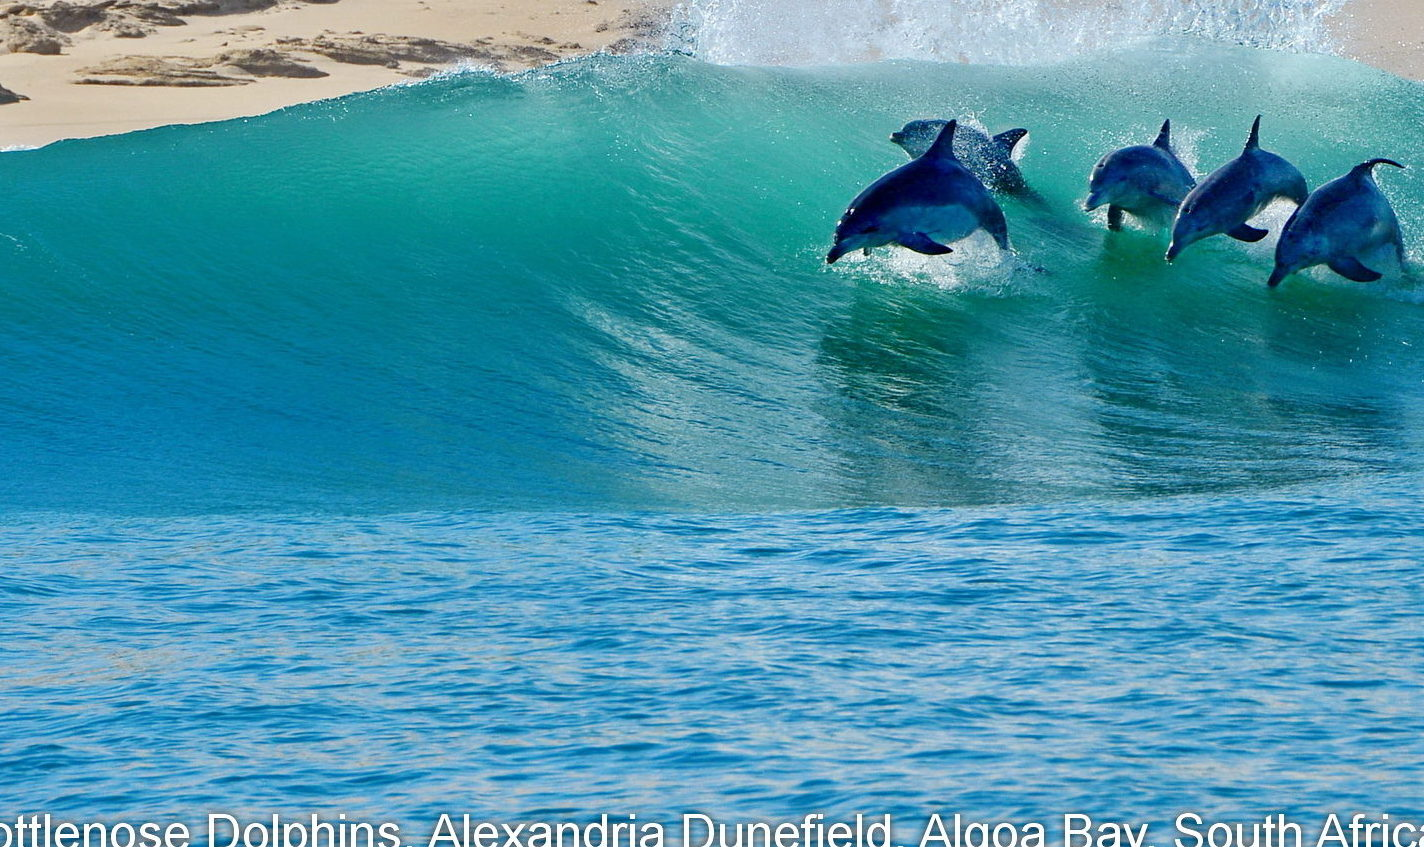 WCA_Bottlenose_dolphins_Alexandria_Dunefields_Algoa_Bay_Greater_Addo_Elephant_National_Park_Lloyd_Edwards-e1506419871507